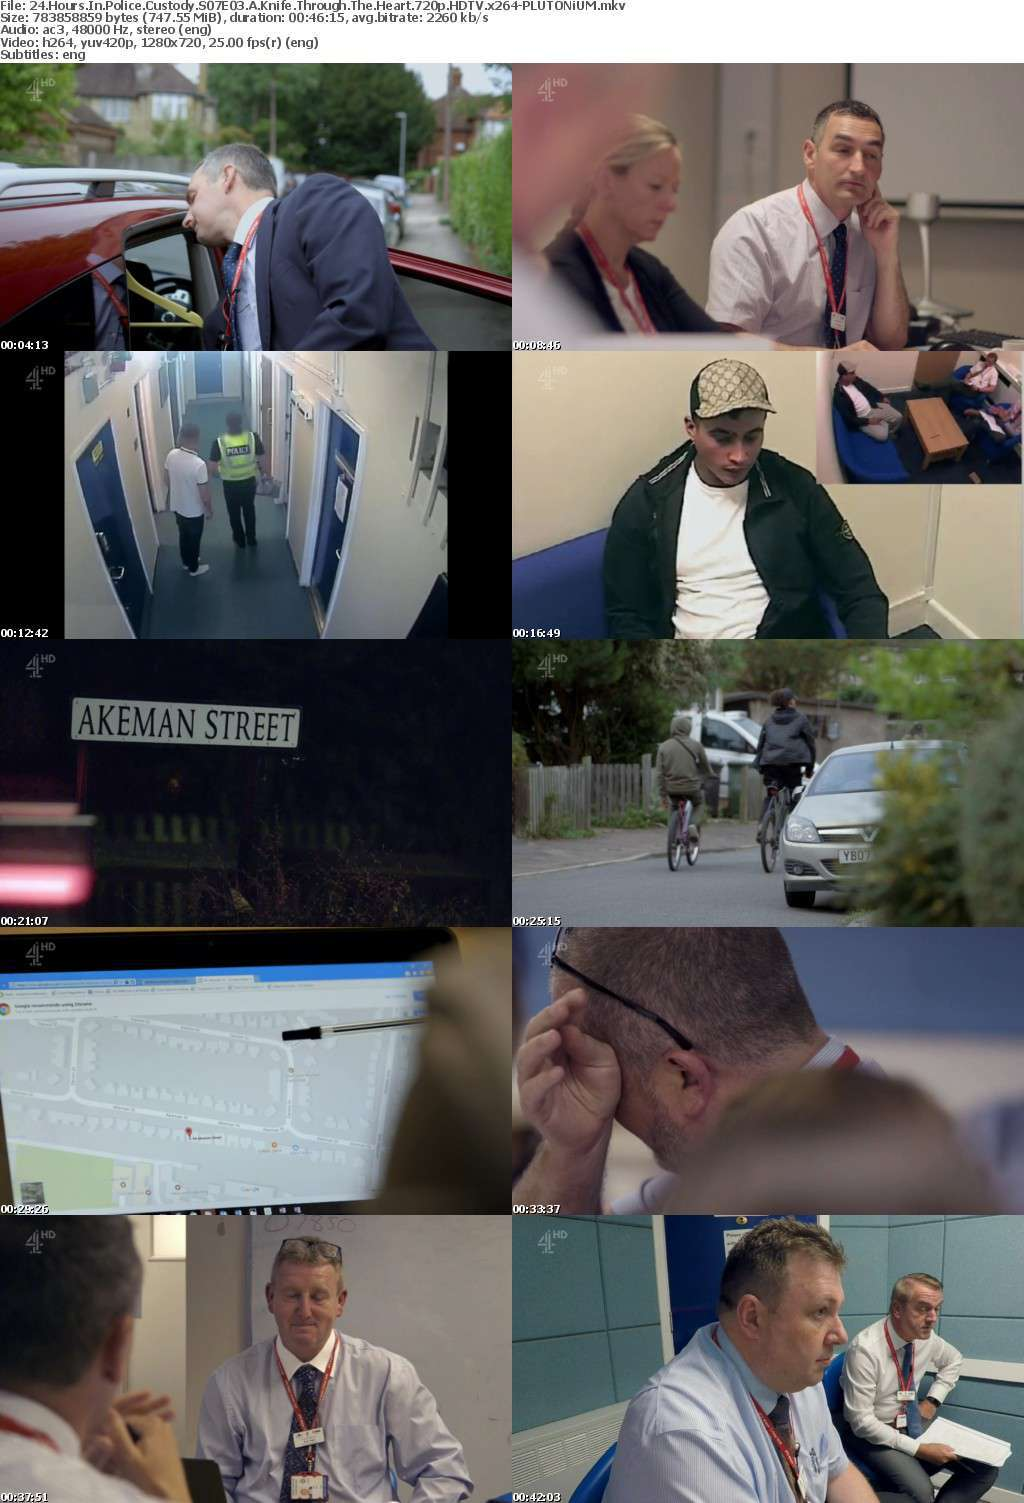 24 Hours In Police Custody S07E03 A Knife Through The Heart 720p HDTV x264-PLUTONiUM